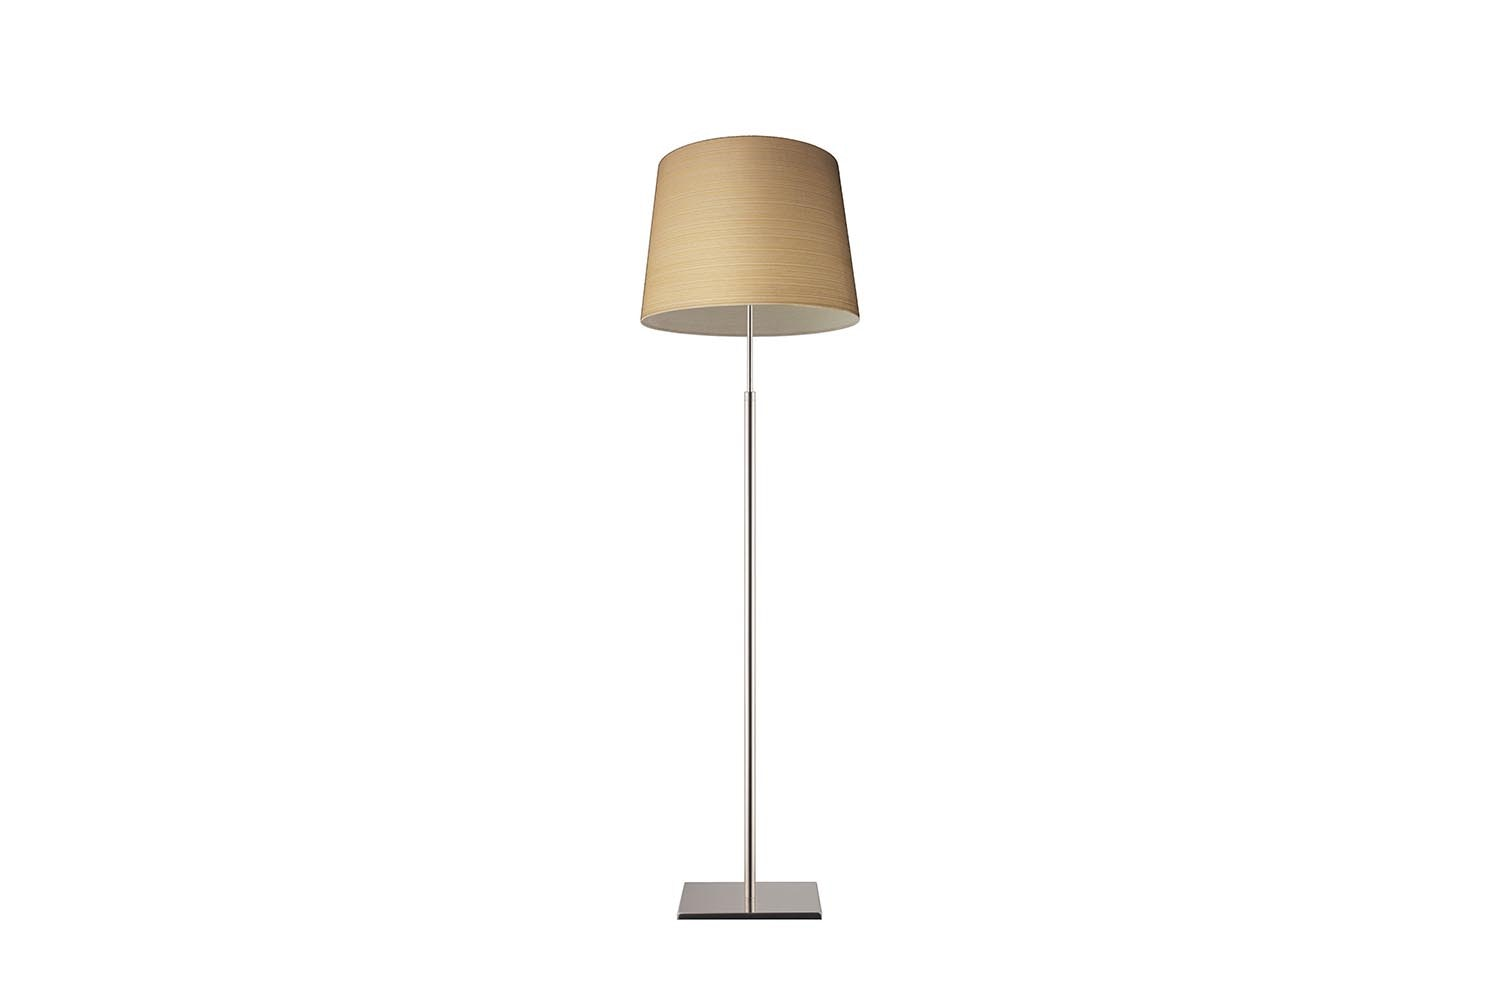 Giga-Lite Floor Lamp by Marc Sadler for Foscarini